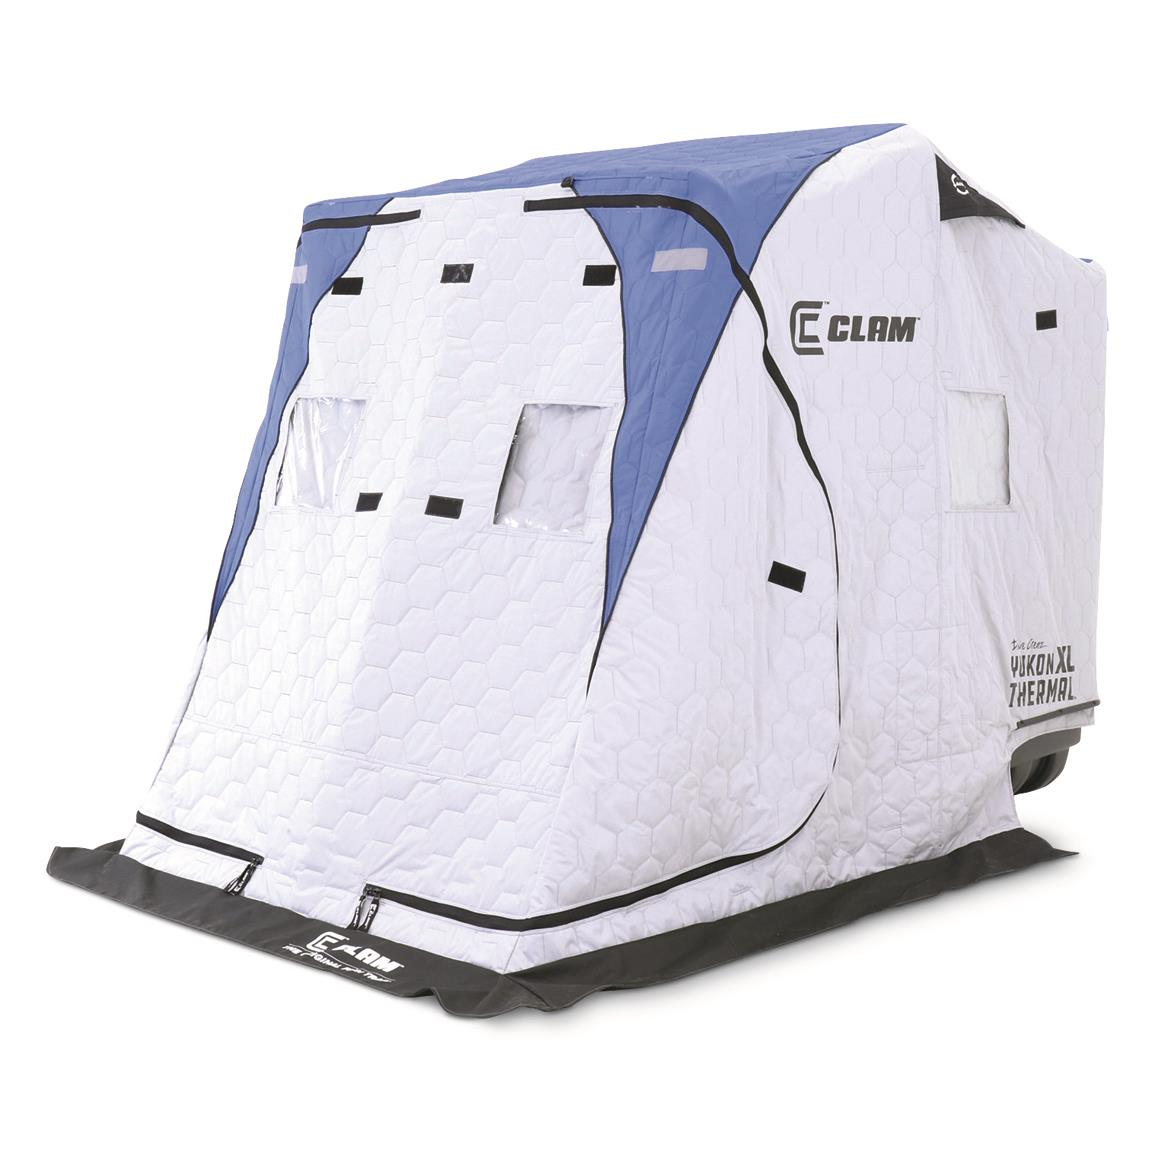 Clam™ Yukon XL Thermal Ice Shelter